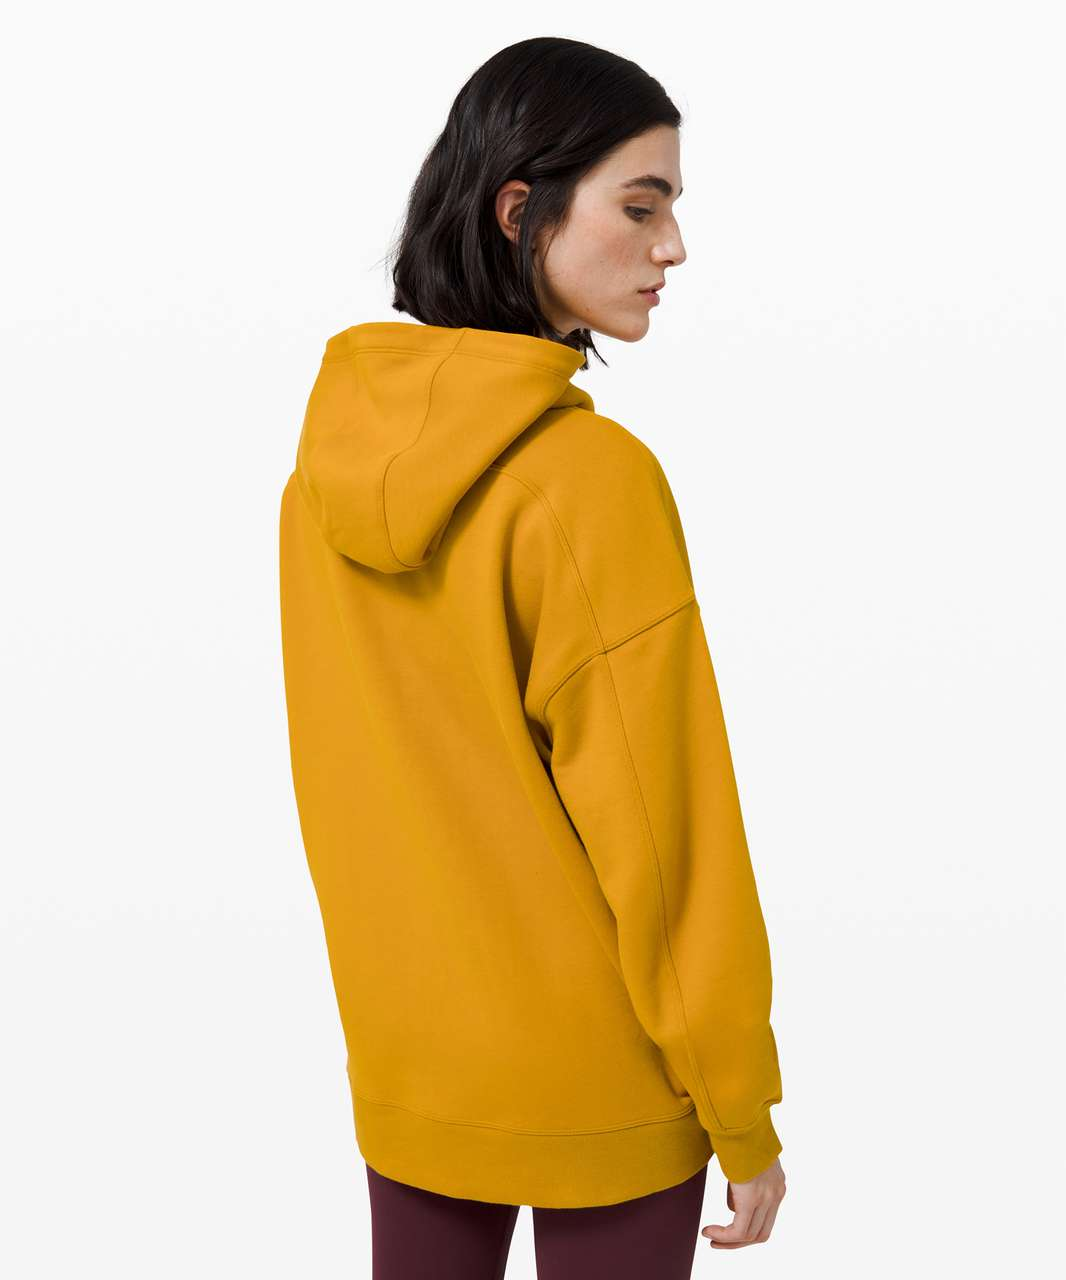 Lululemon Perfectly Oversized Hoodie - Fools Gold